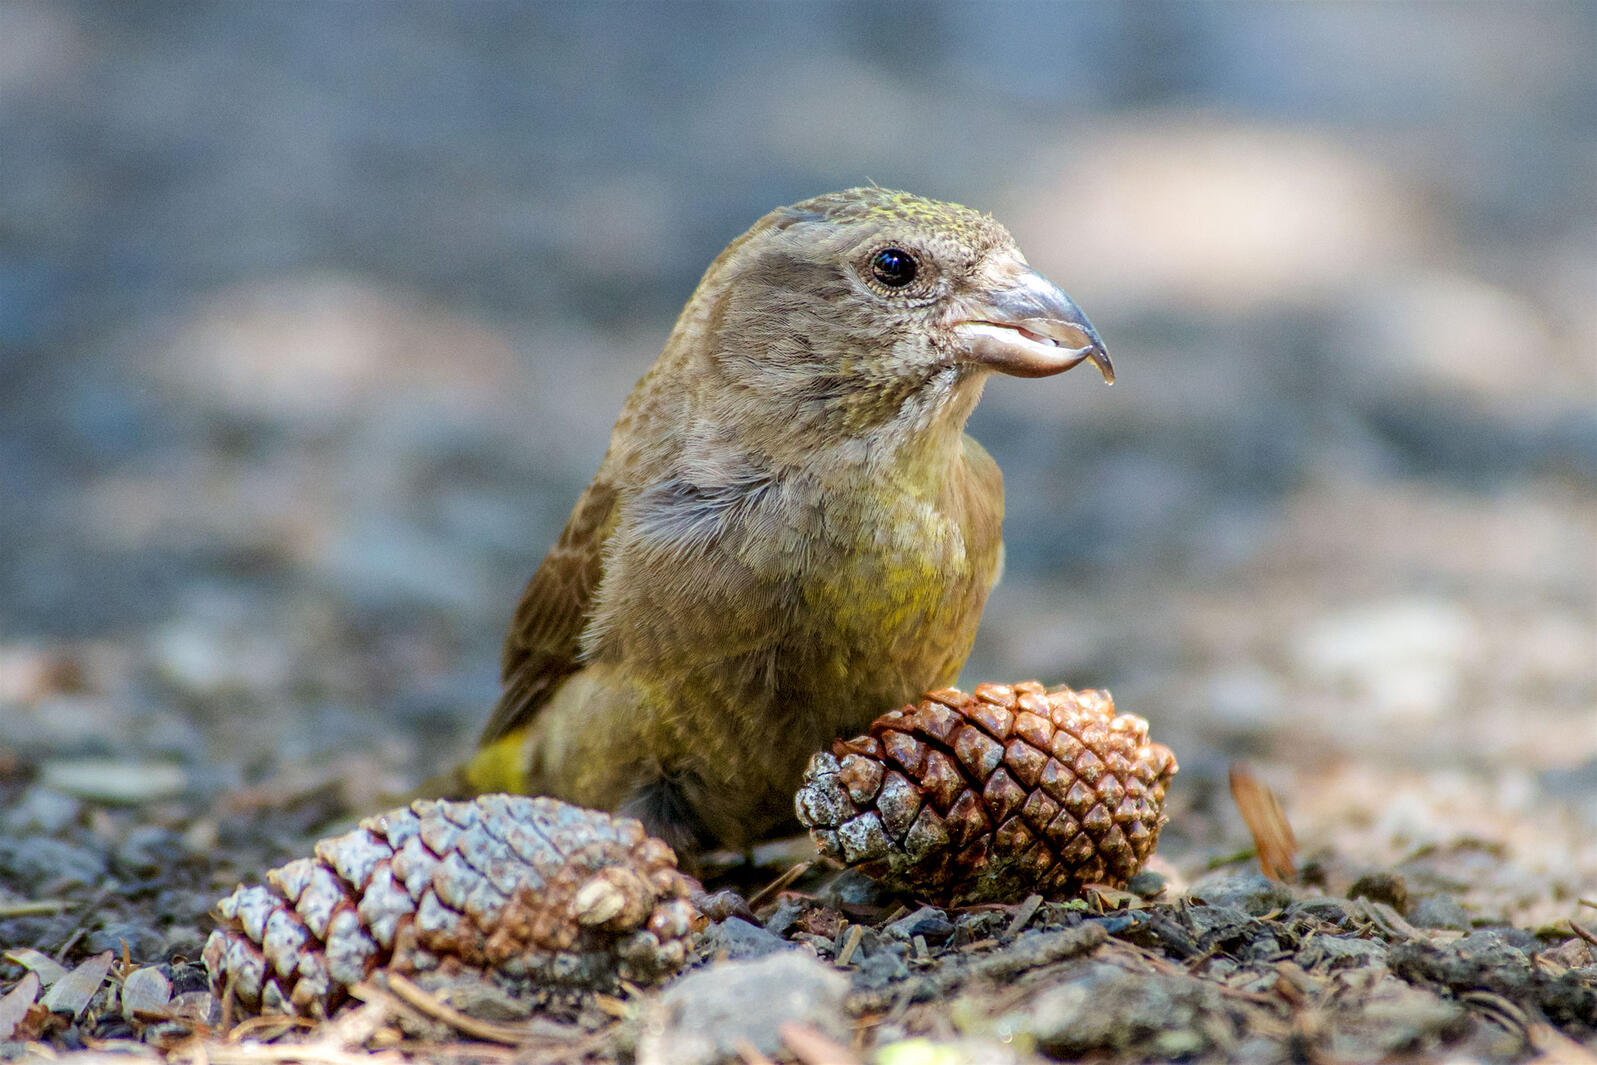 A female Cassia Crossbill, sporting yellow and brown feathers, stands behind two lodgepole pine cones. The species has a twisted bill that wrenches apart pine cone scales to access seeds inside. Craig Benkman